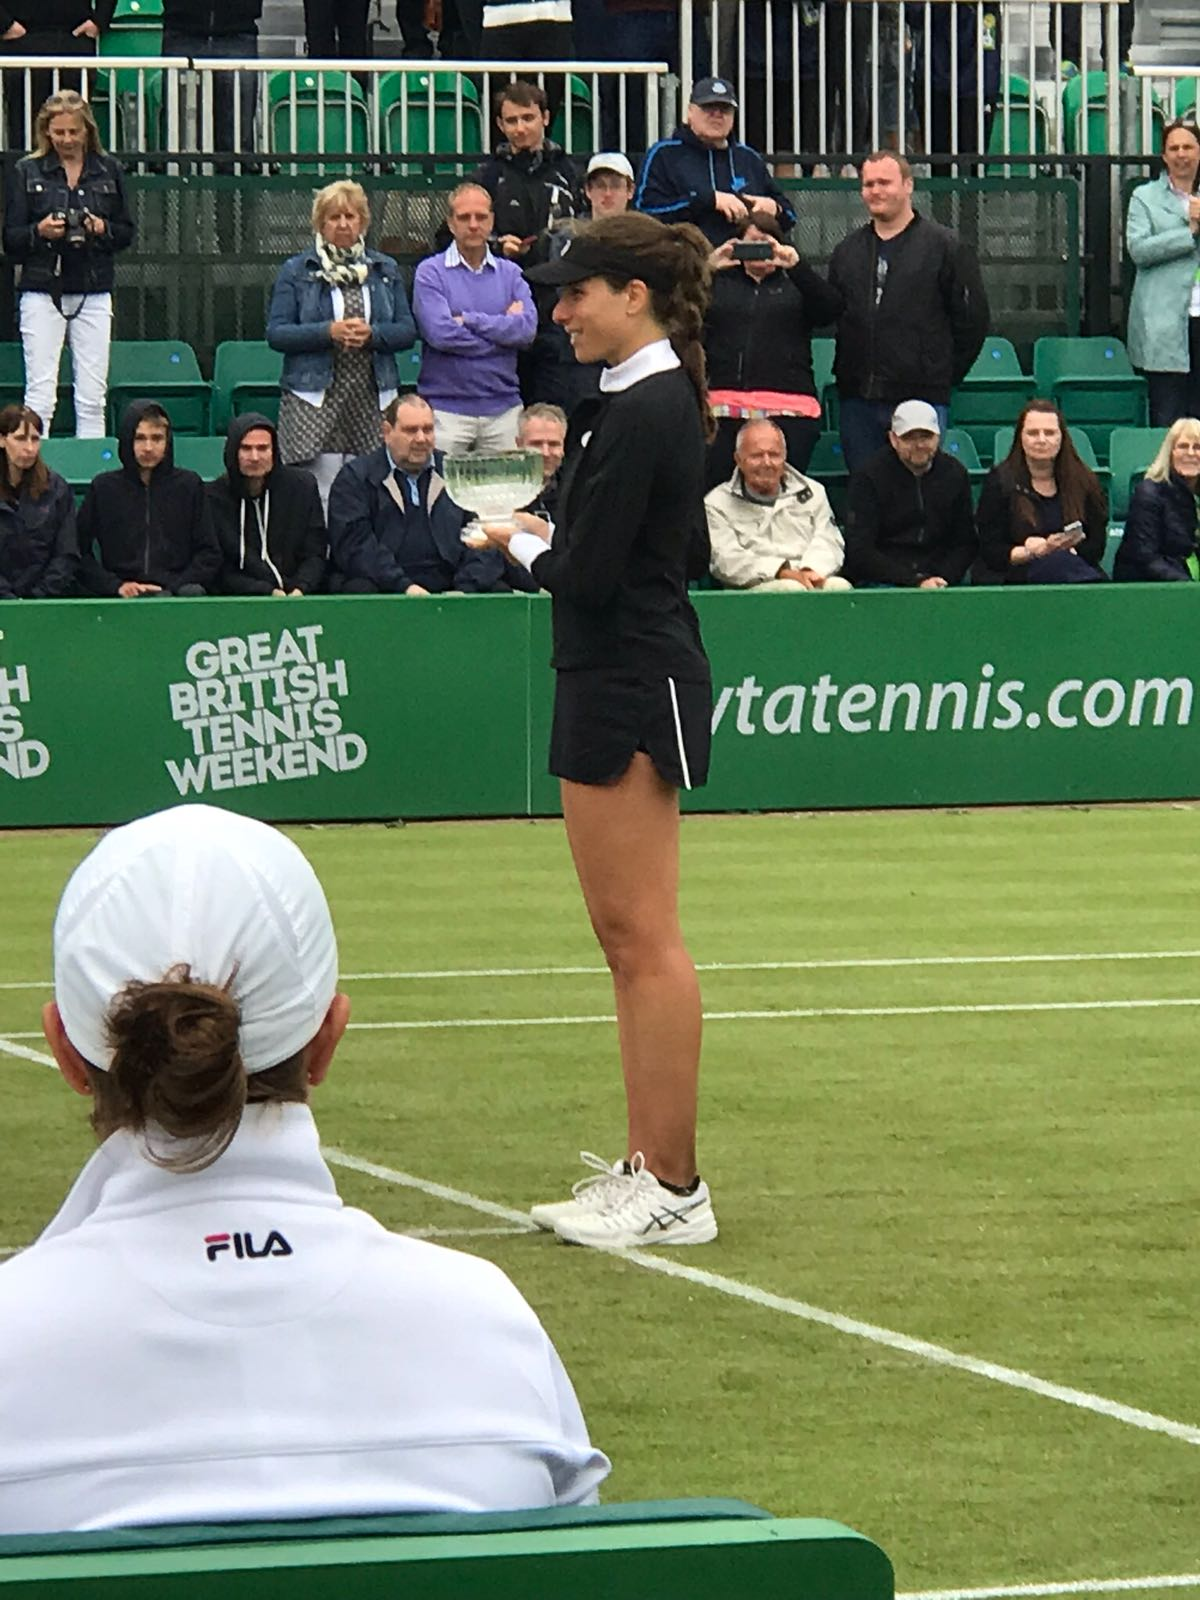 Jo Konta receiving the runners-up trophy at the Nature Valley Open in Nottingham.